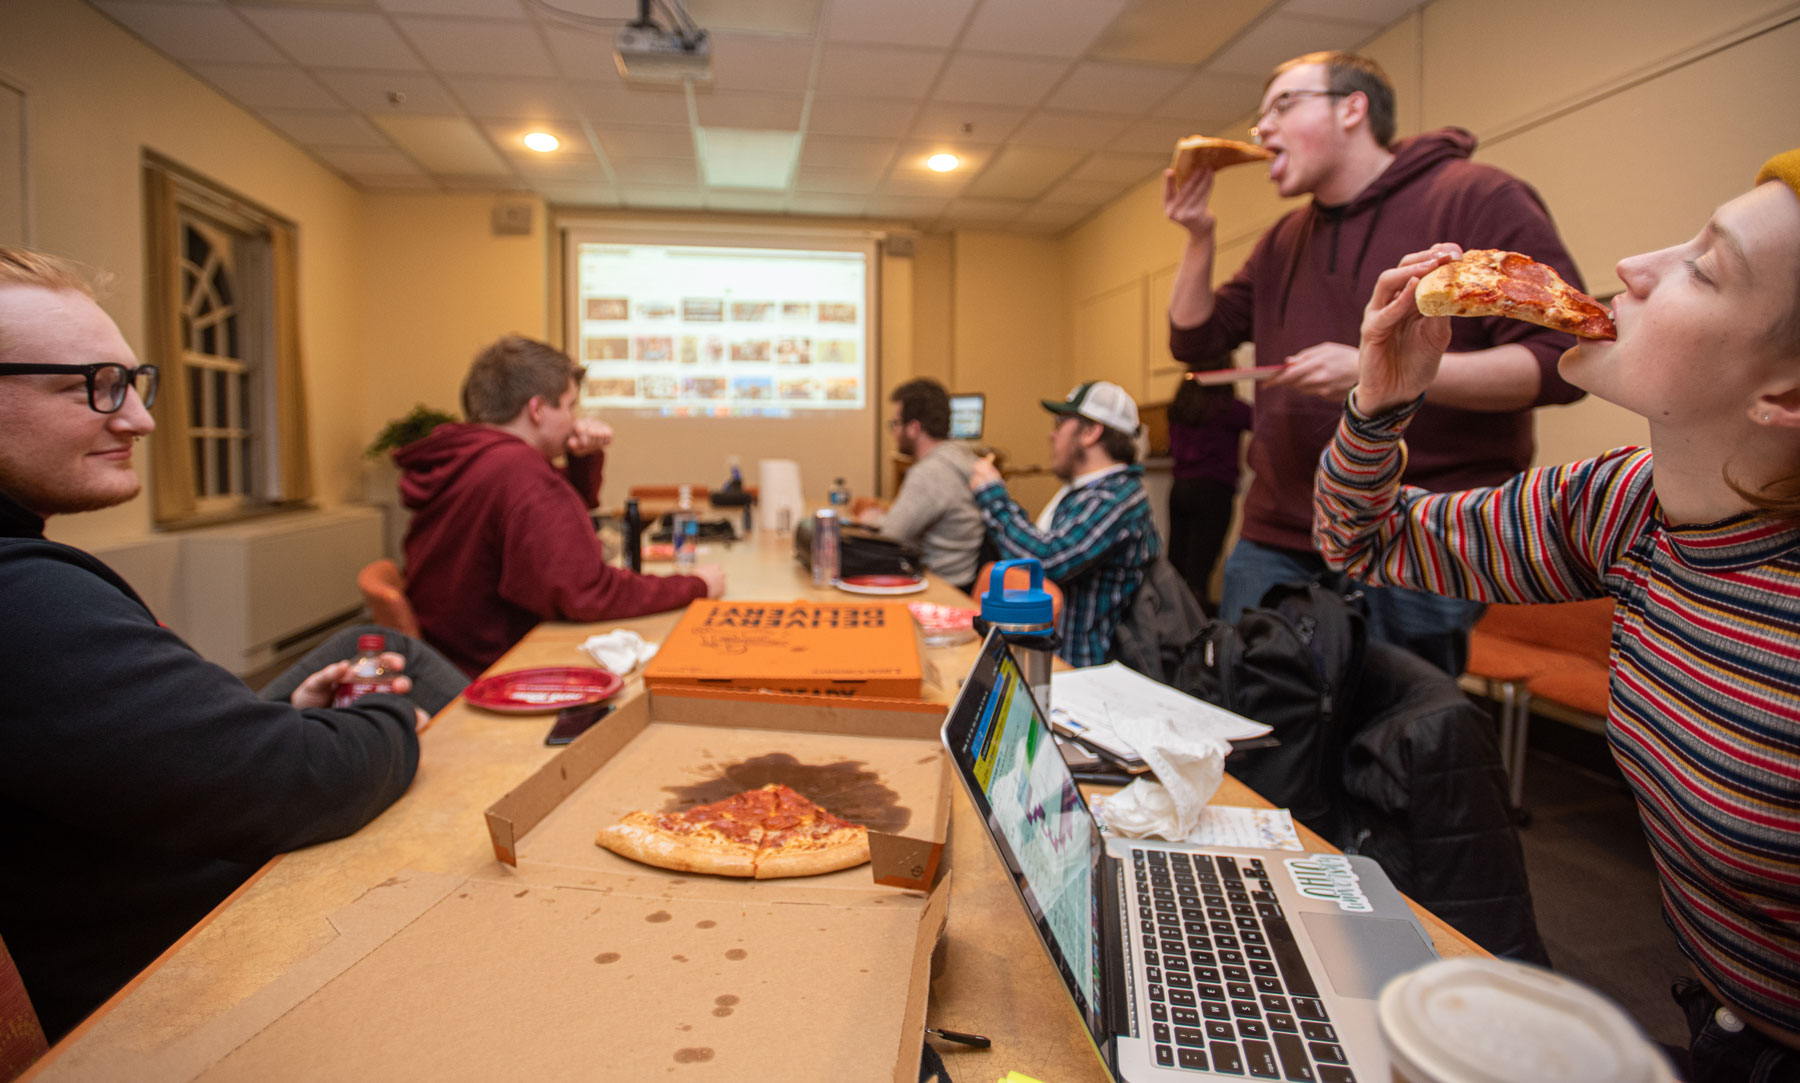 Students enjoying pizza during a planning session